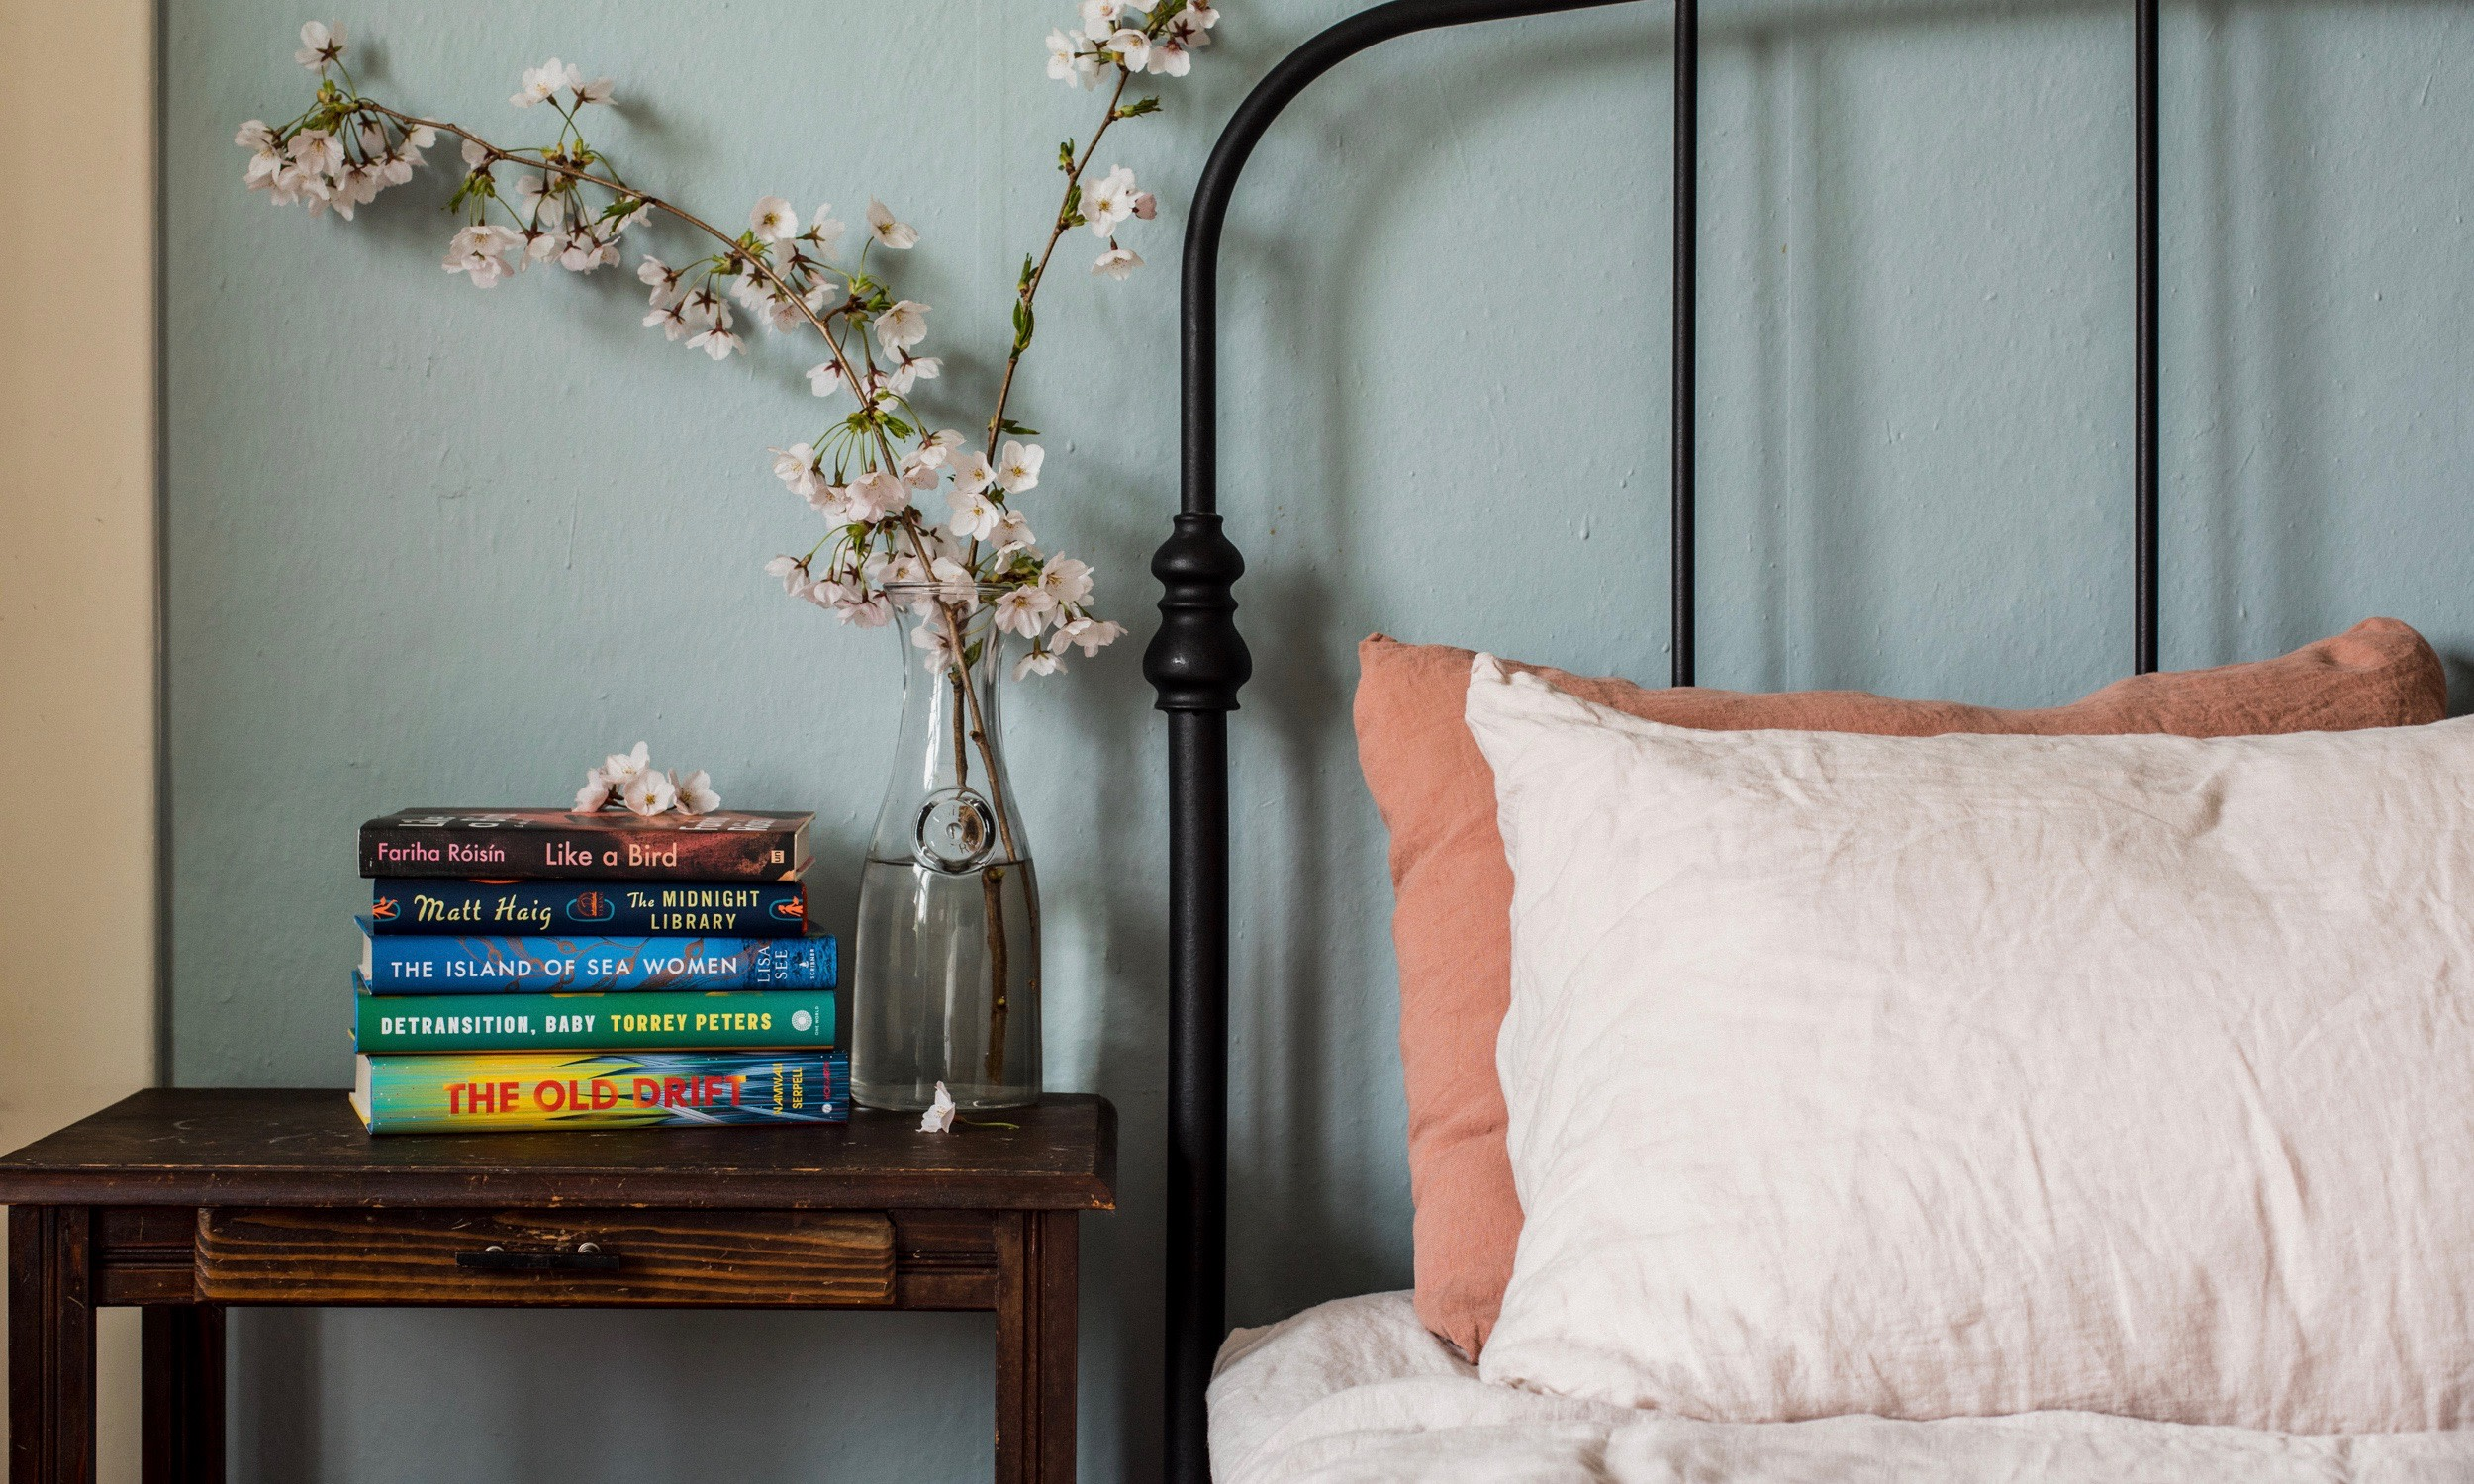 Book stack next to a blush and clay bed.